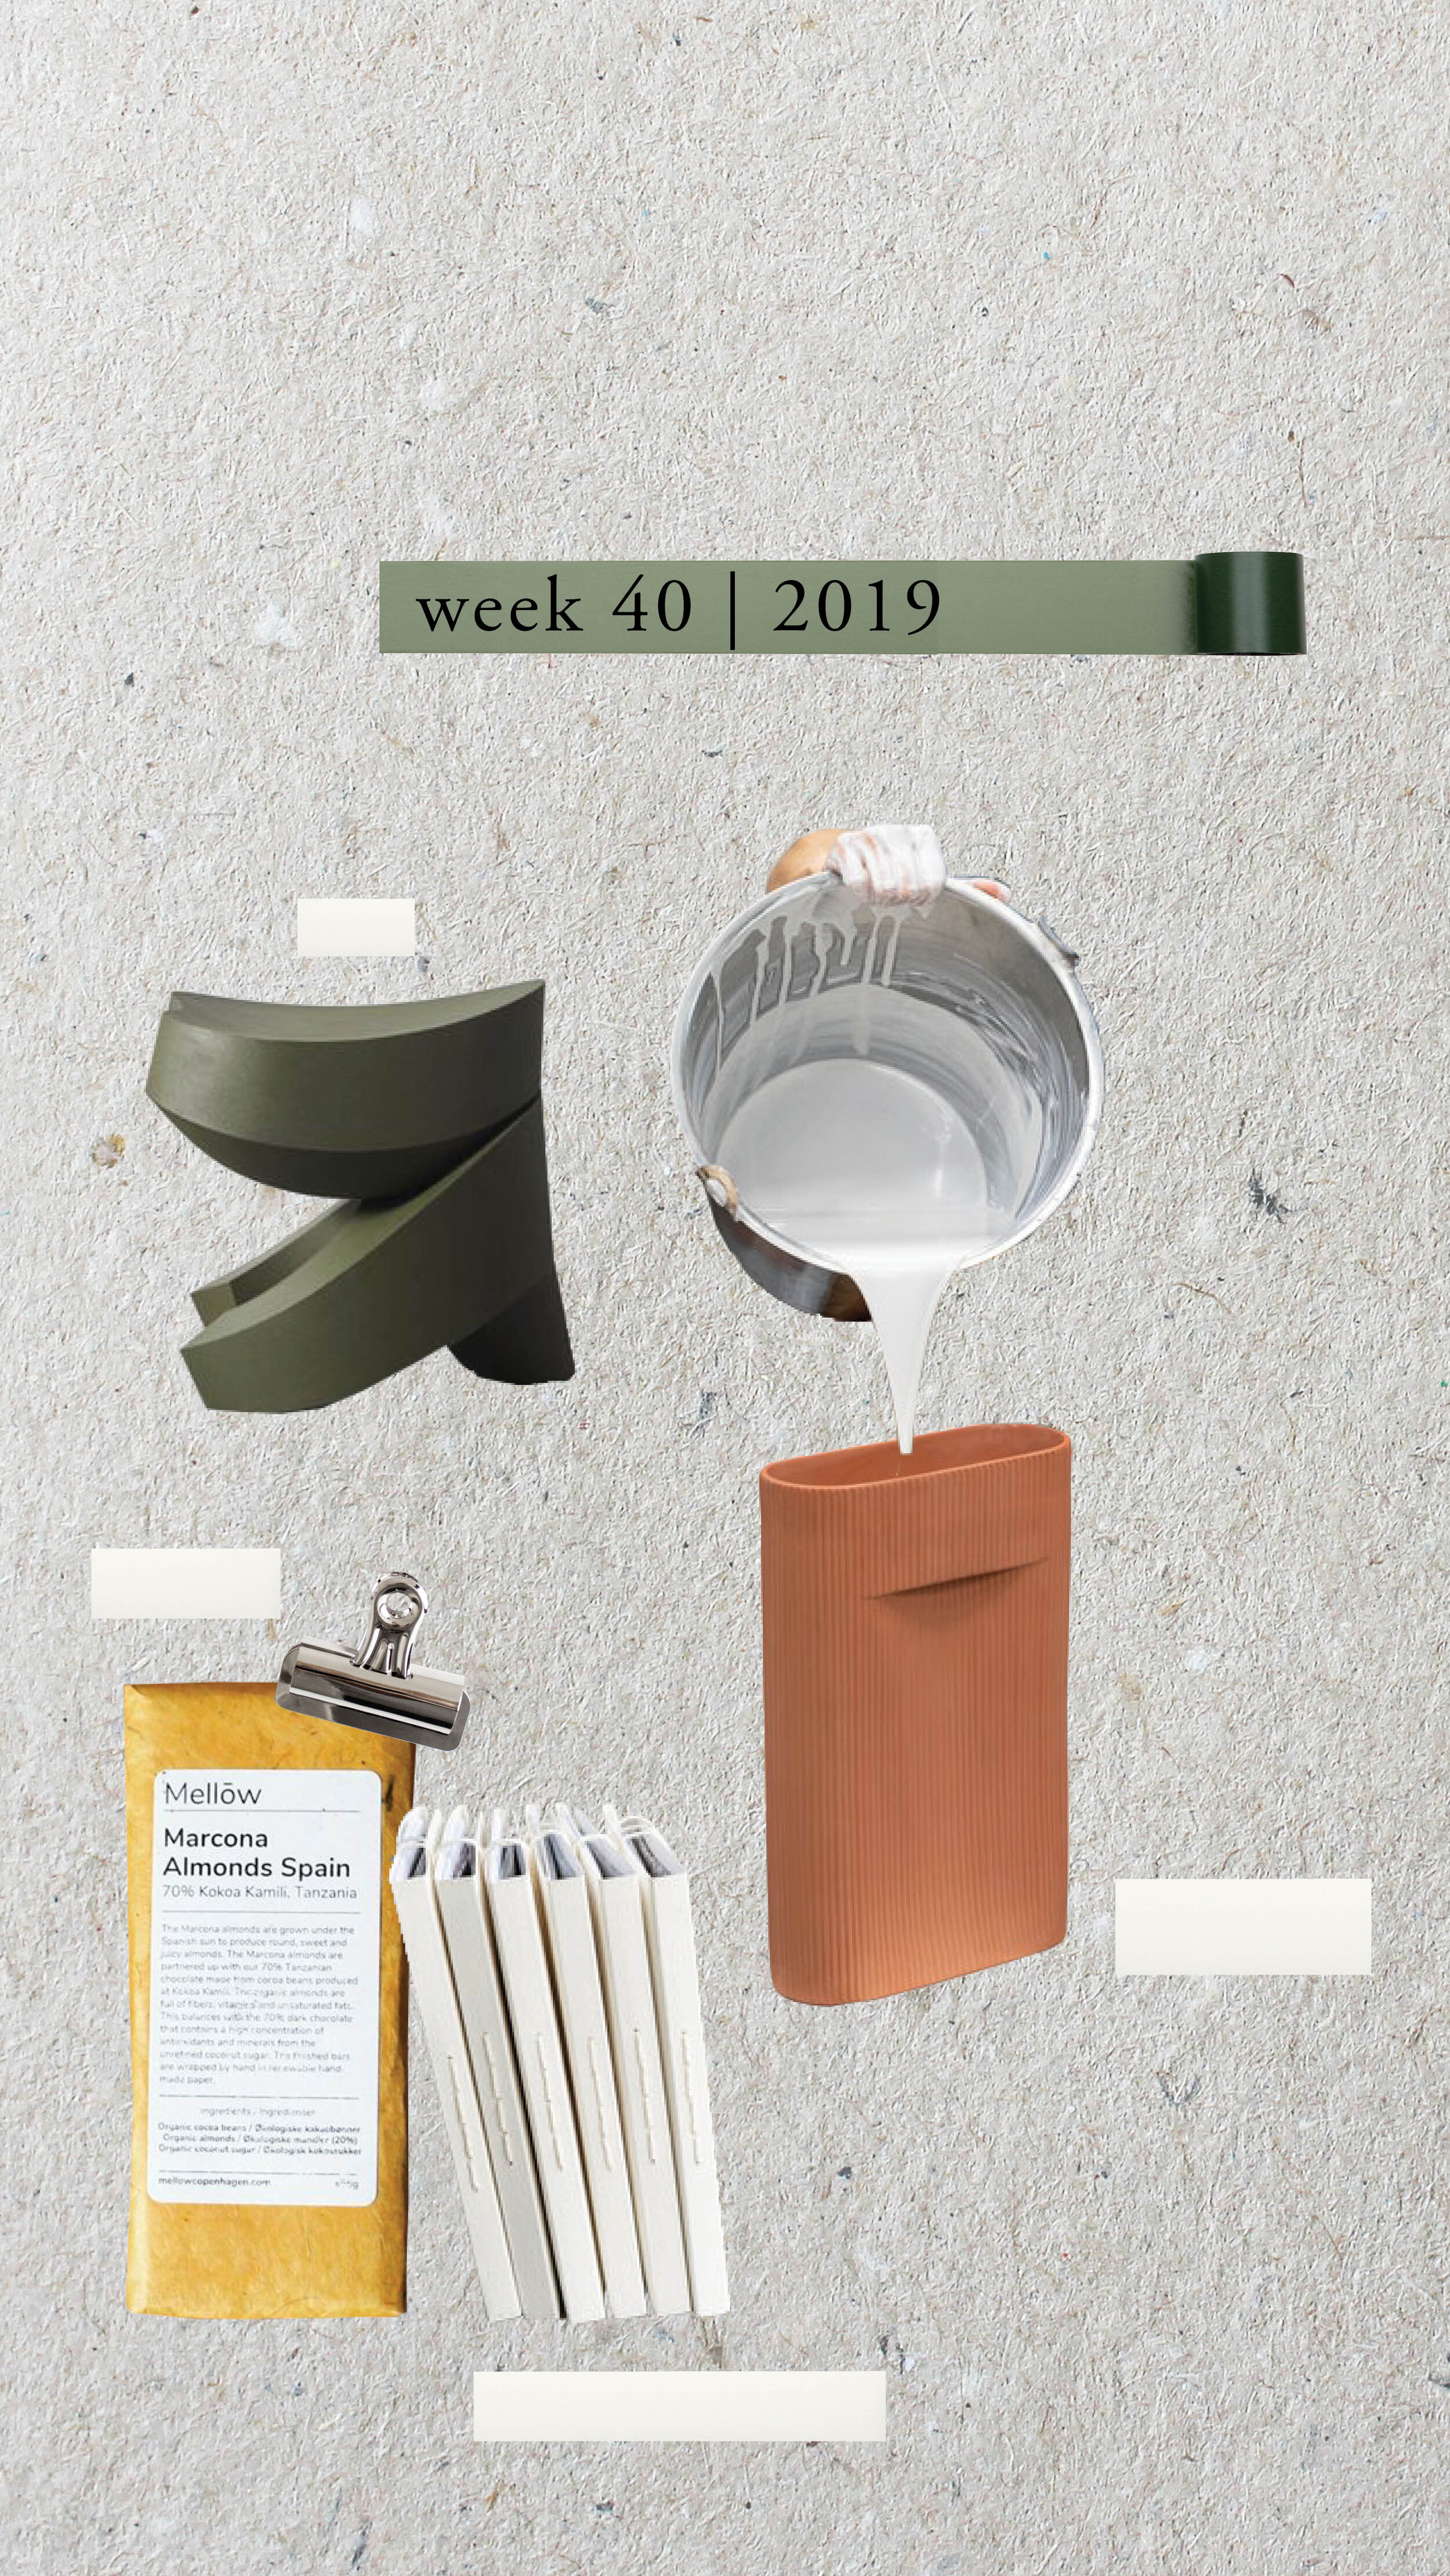 - Drumroll please… A big welcome to our weekly clippings! Sure we might be starting late in the year, but it's better than never. I'll be sharing what I've found that current week be Paper, Design, Sustainability or Life in Copenhagen. Enjoy!